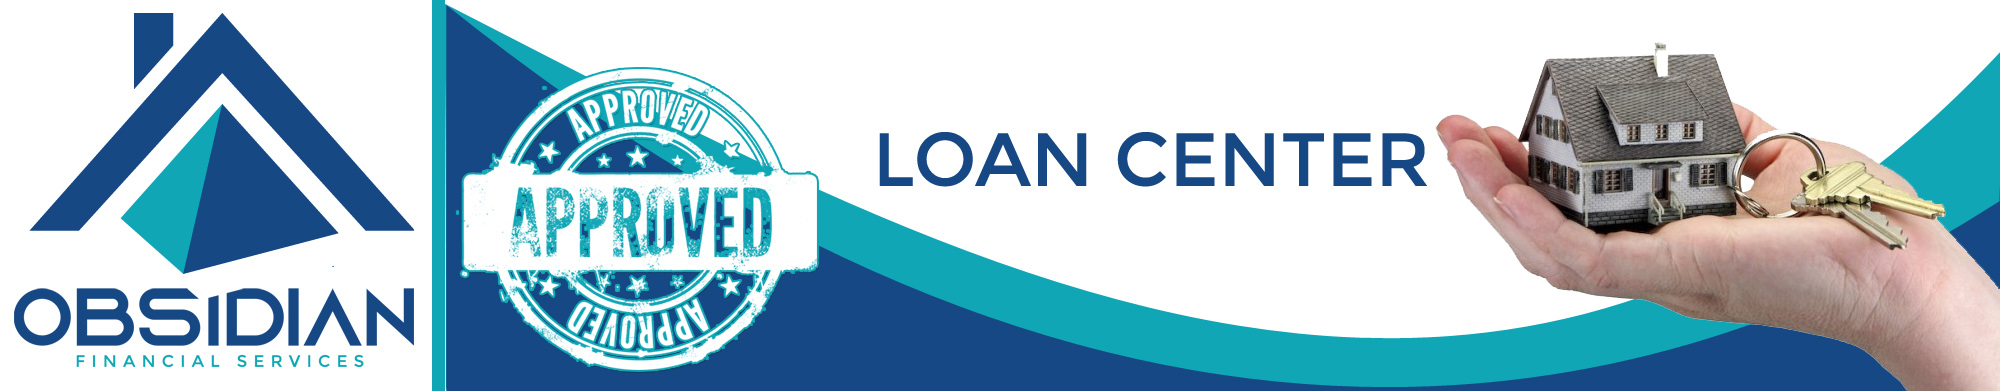 Understanding Your Loan Options - Calculator Page